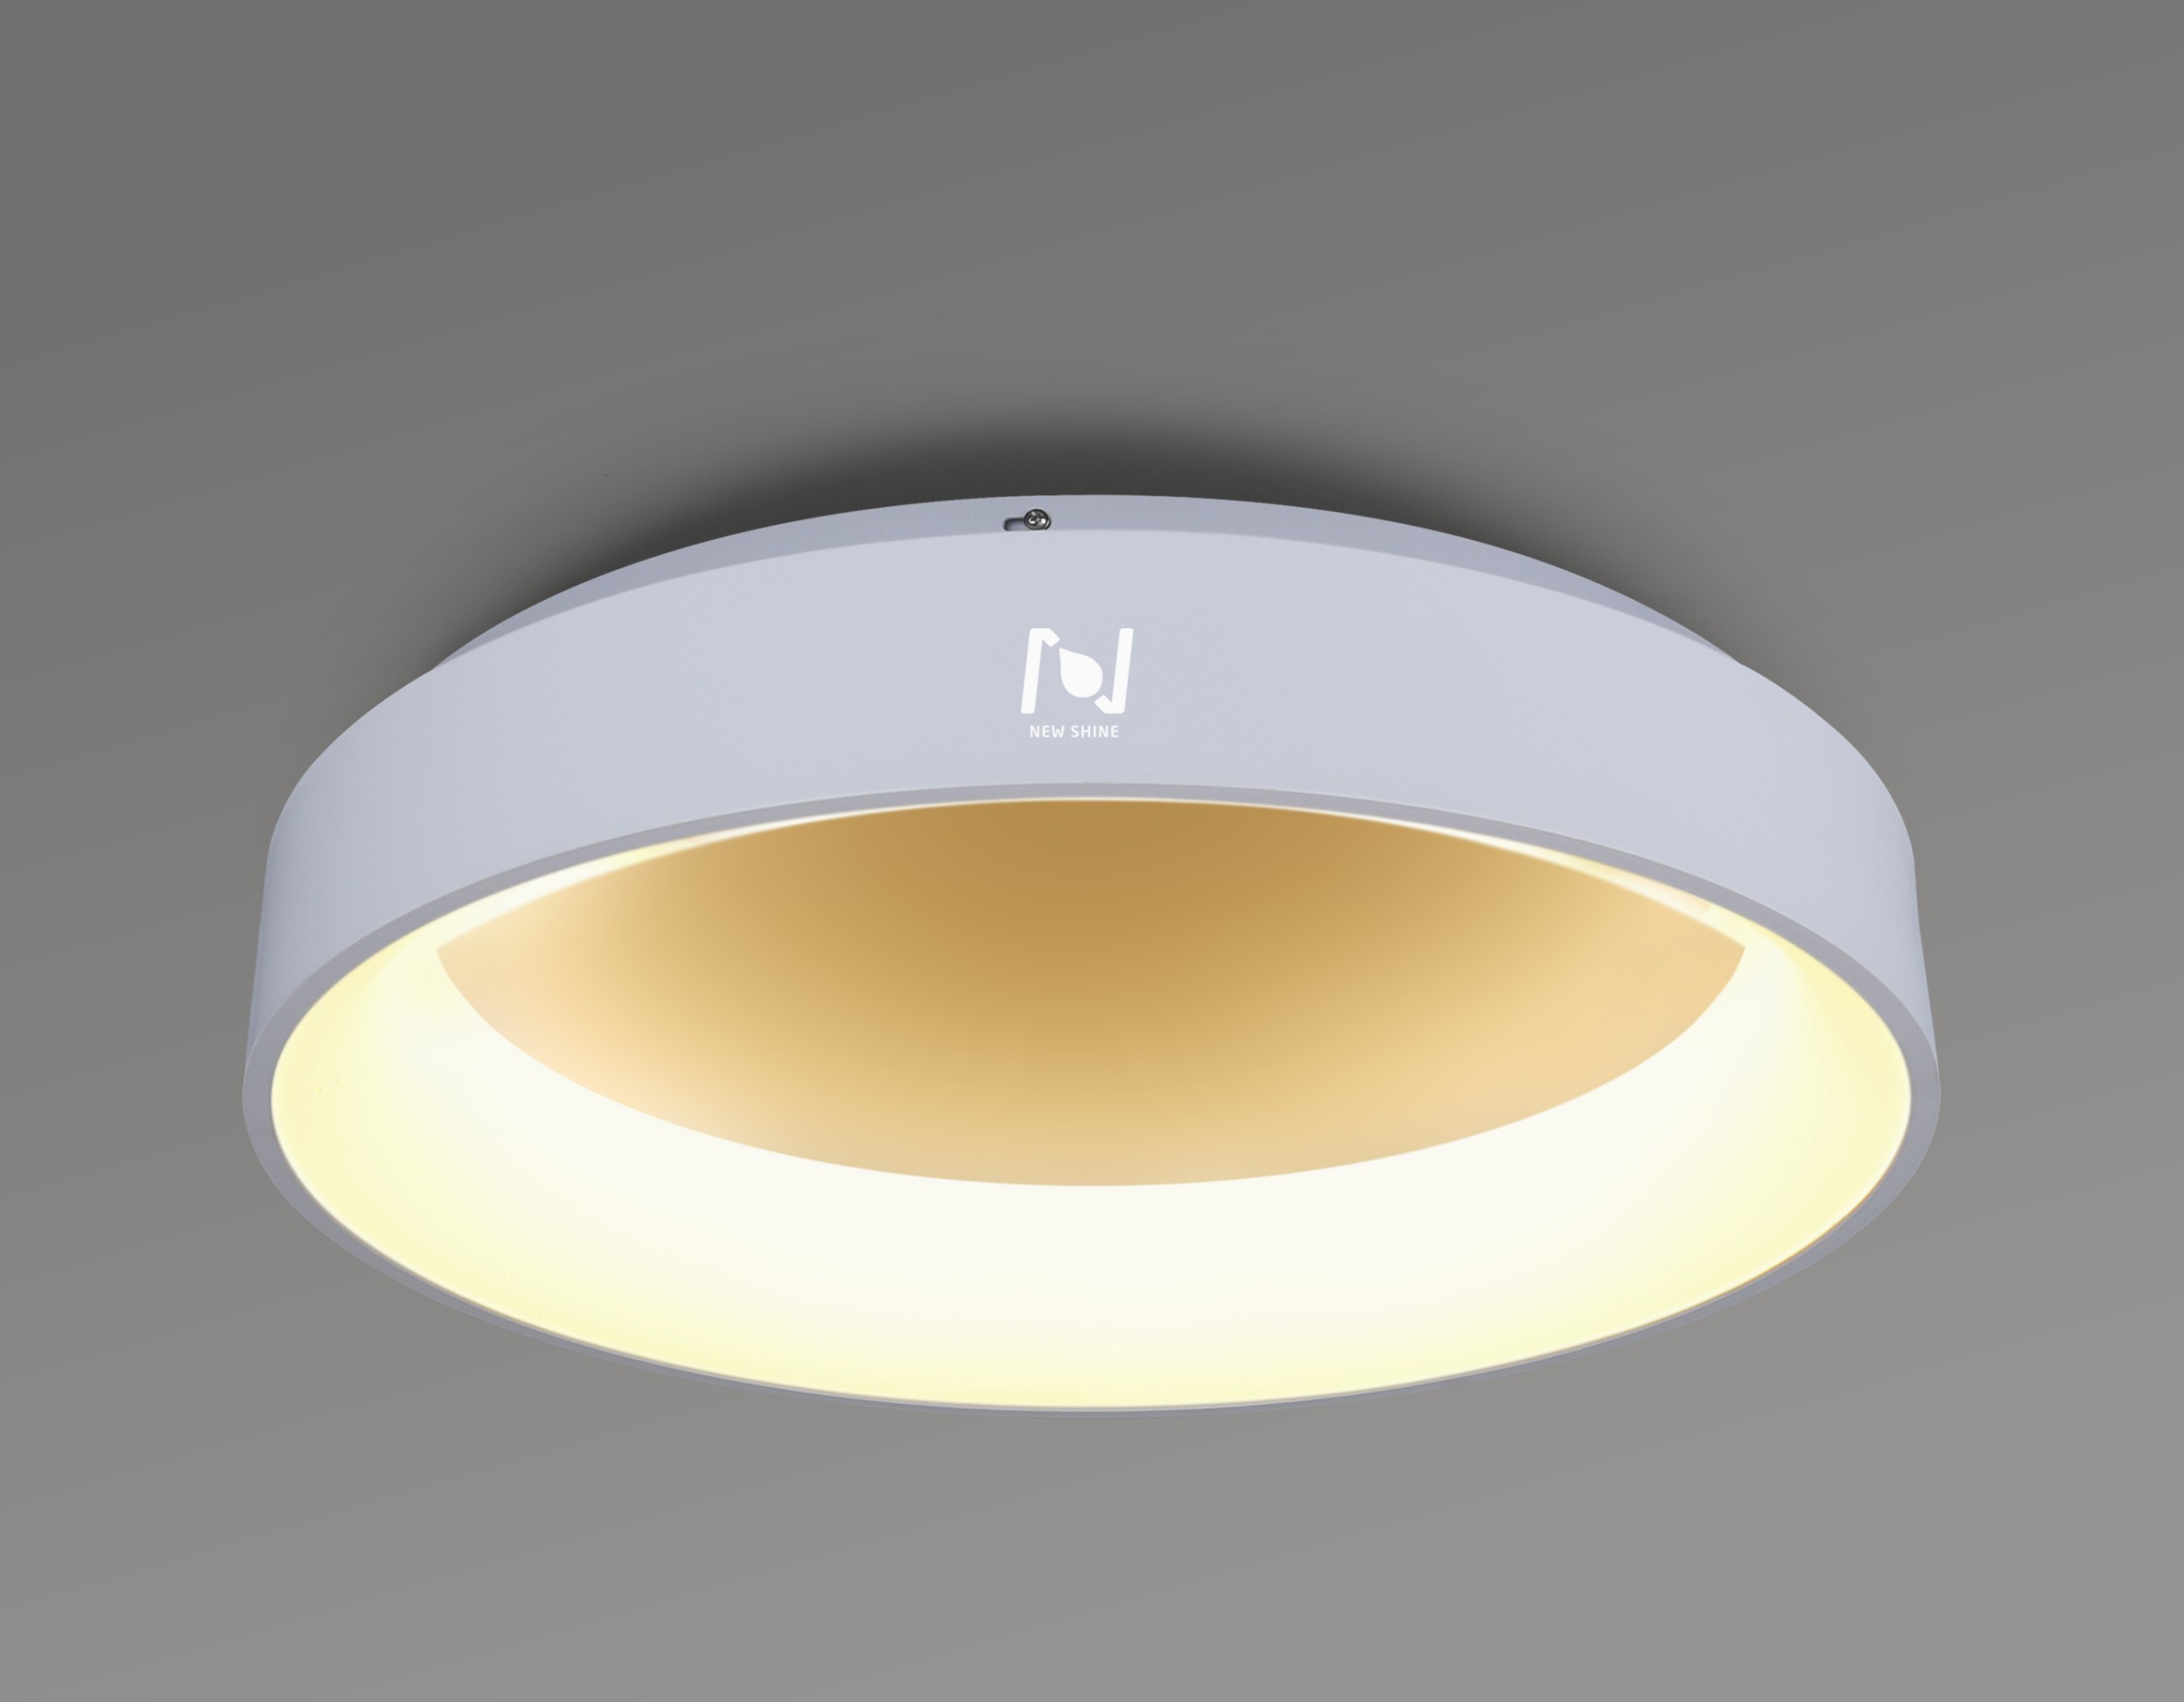 LED MODERN DECORATIVE LIGHTING LL0201M-36W